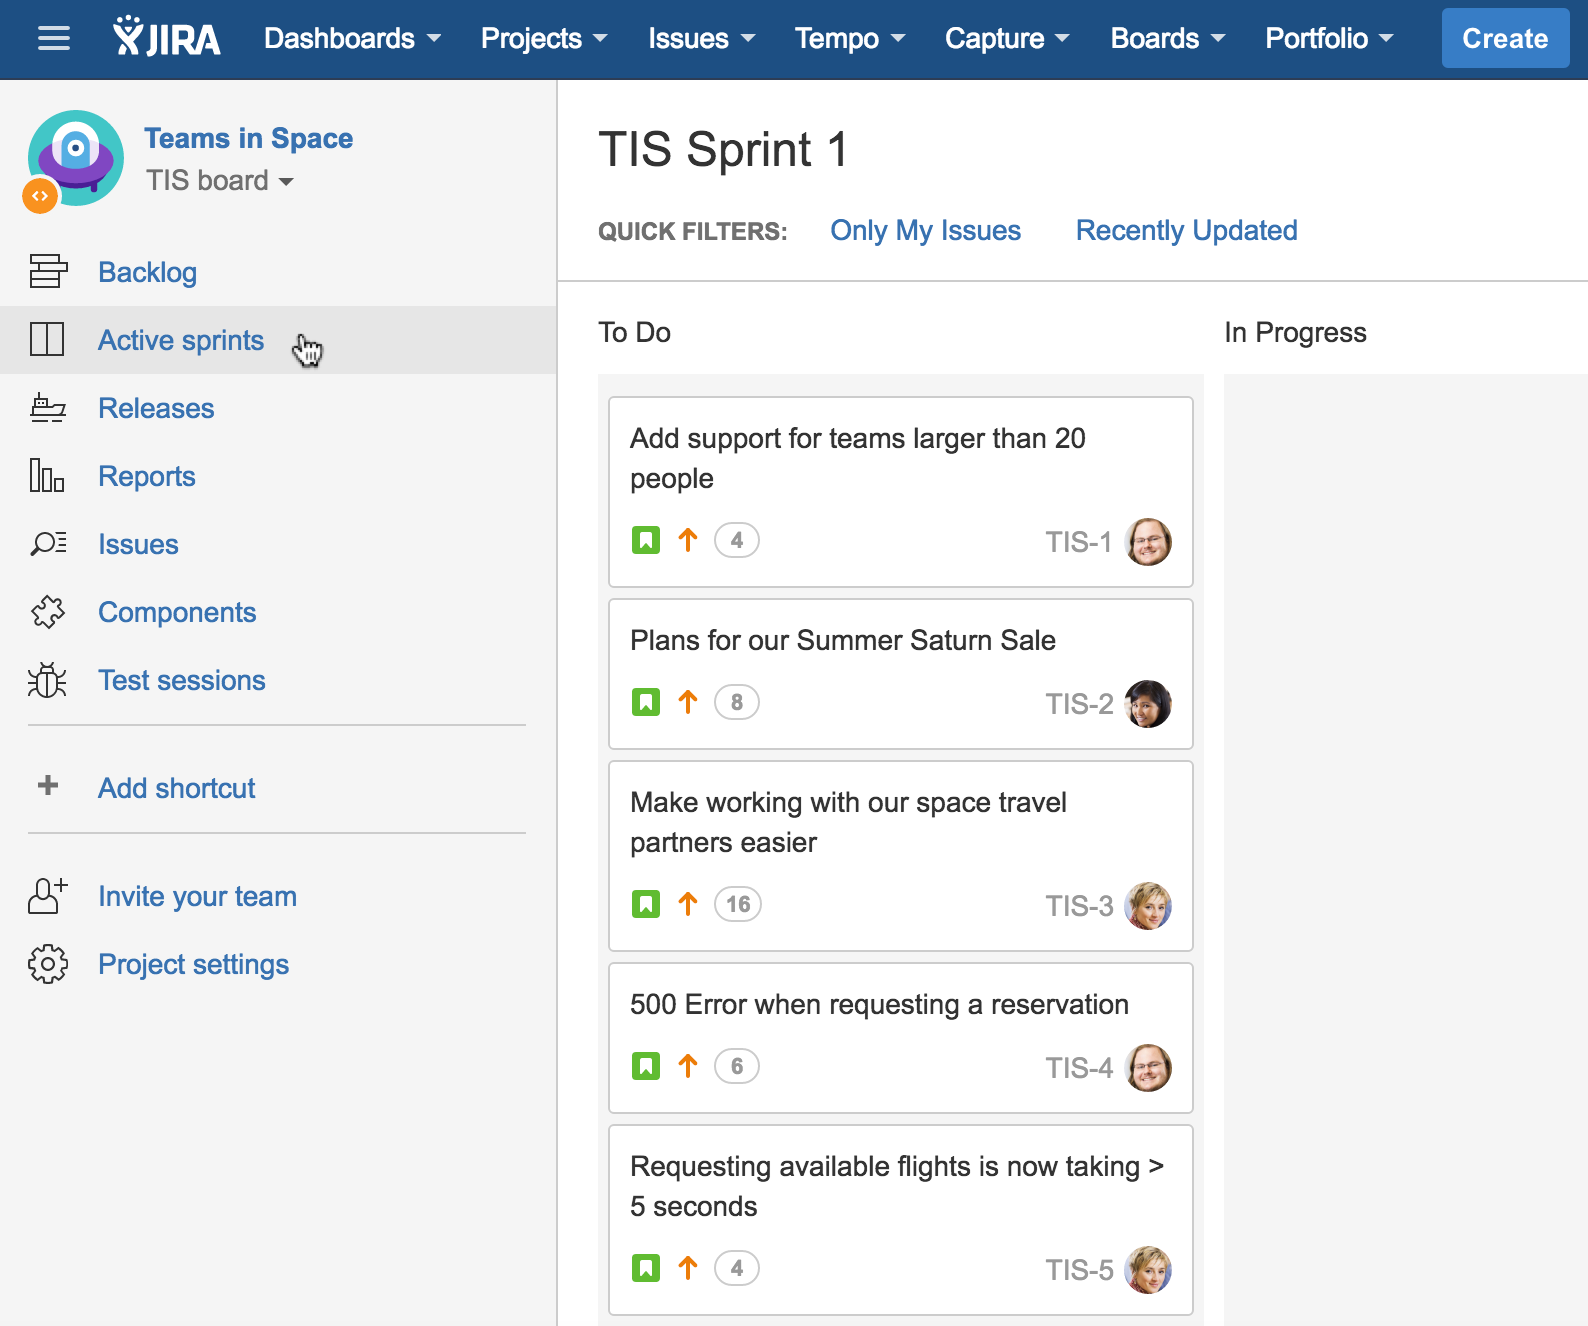 Once You Start Your Sprint, You Will Be Taken To The Active Sprints Tab In  The Project